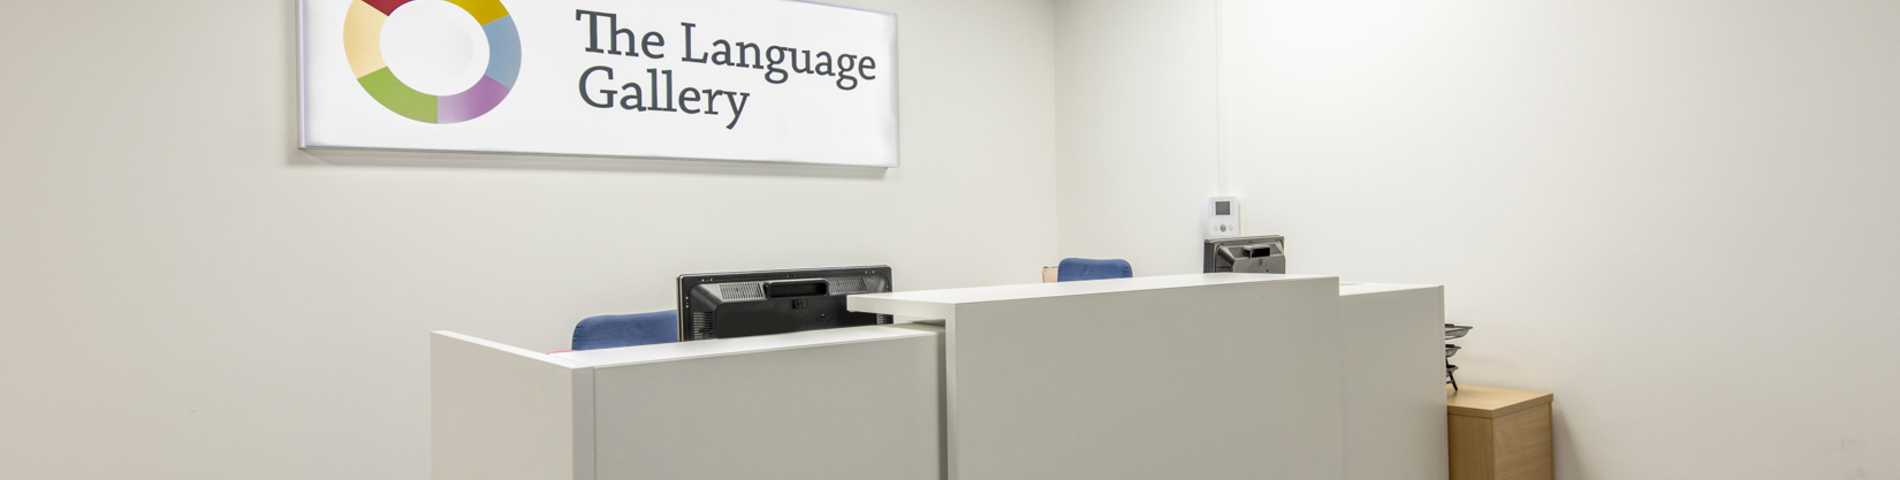 The Language Gallery foto 1